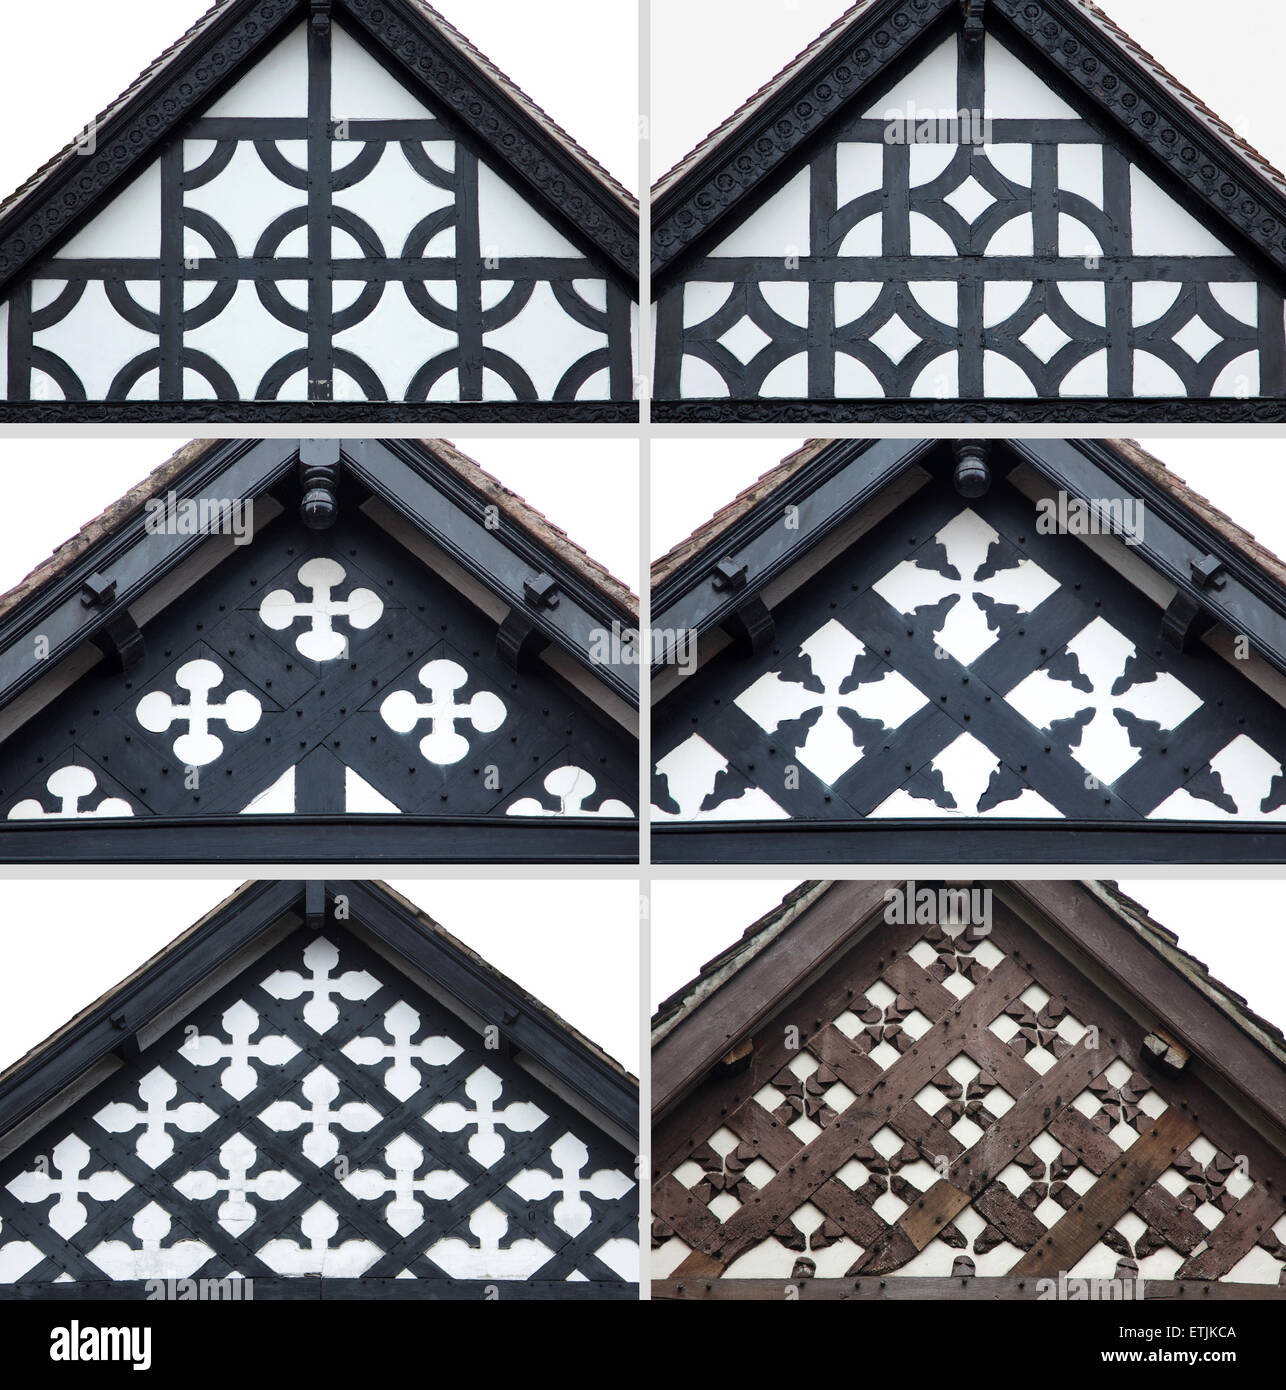 Stock Photo Decorative Gable Ends Of Tudor Houses In Chester England 84003594 on English Tudor Design